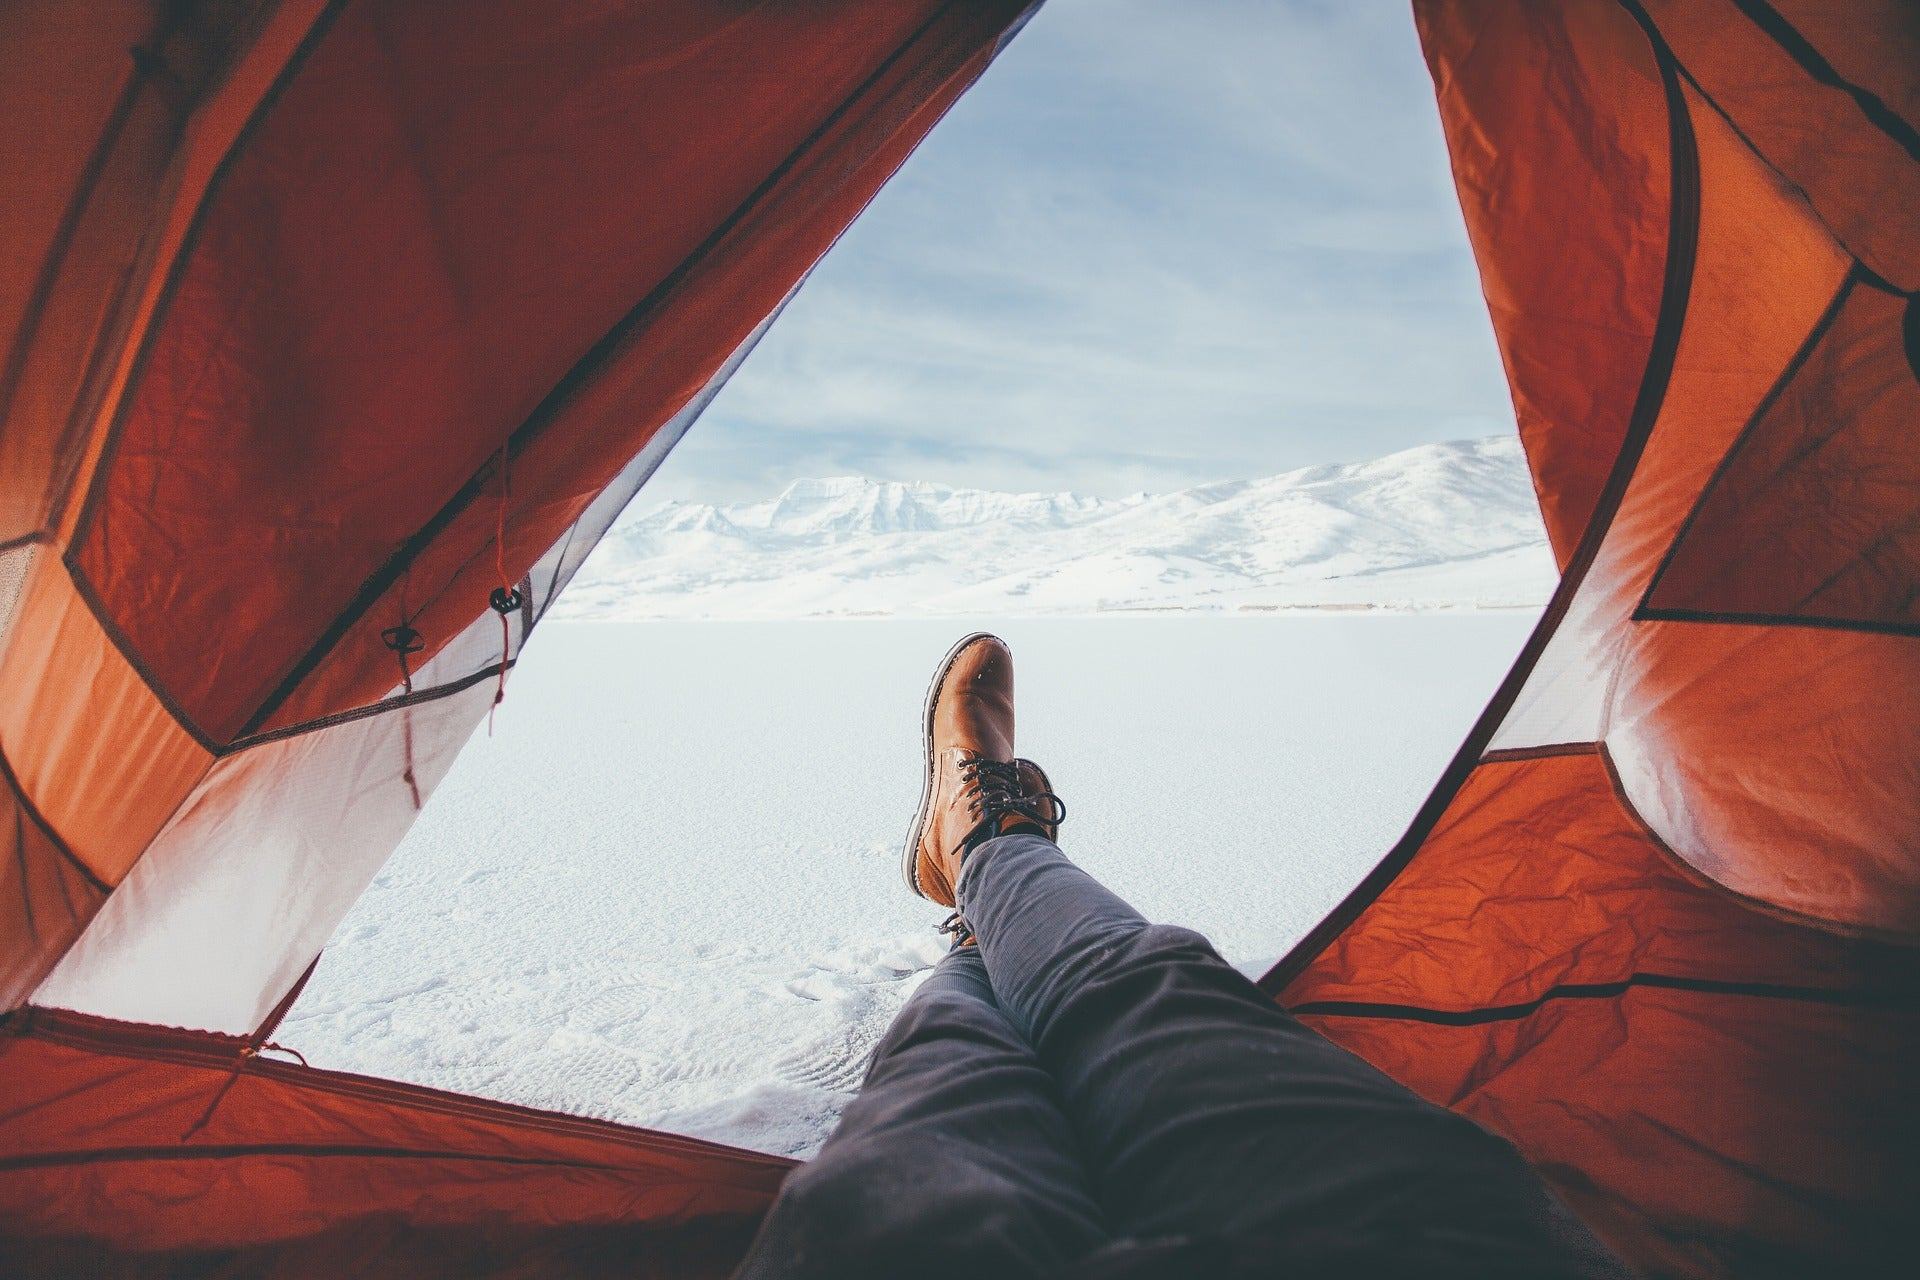 5 Reasons to Fall in Love with Winter Camping